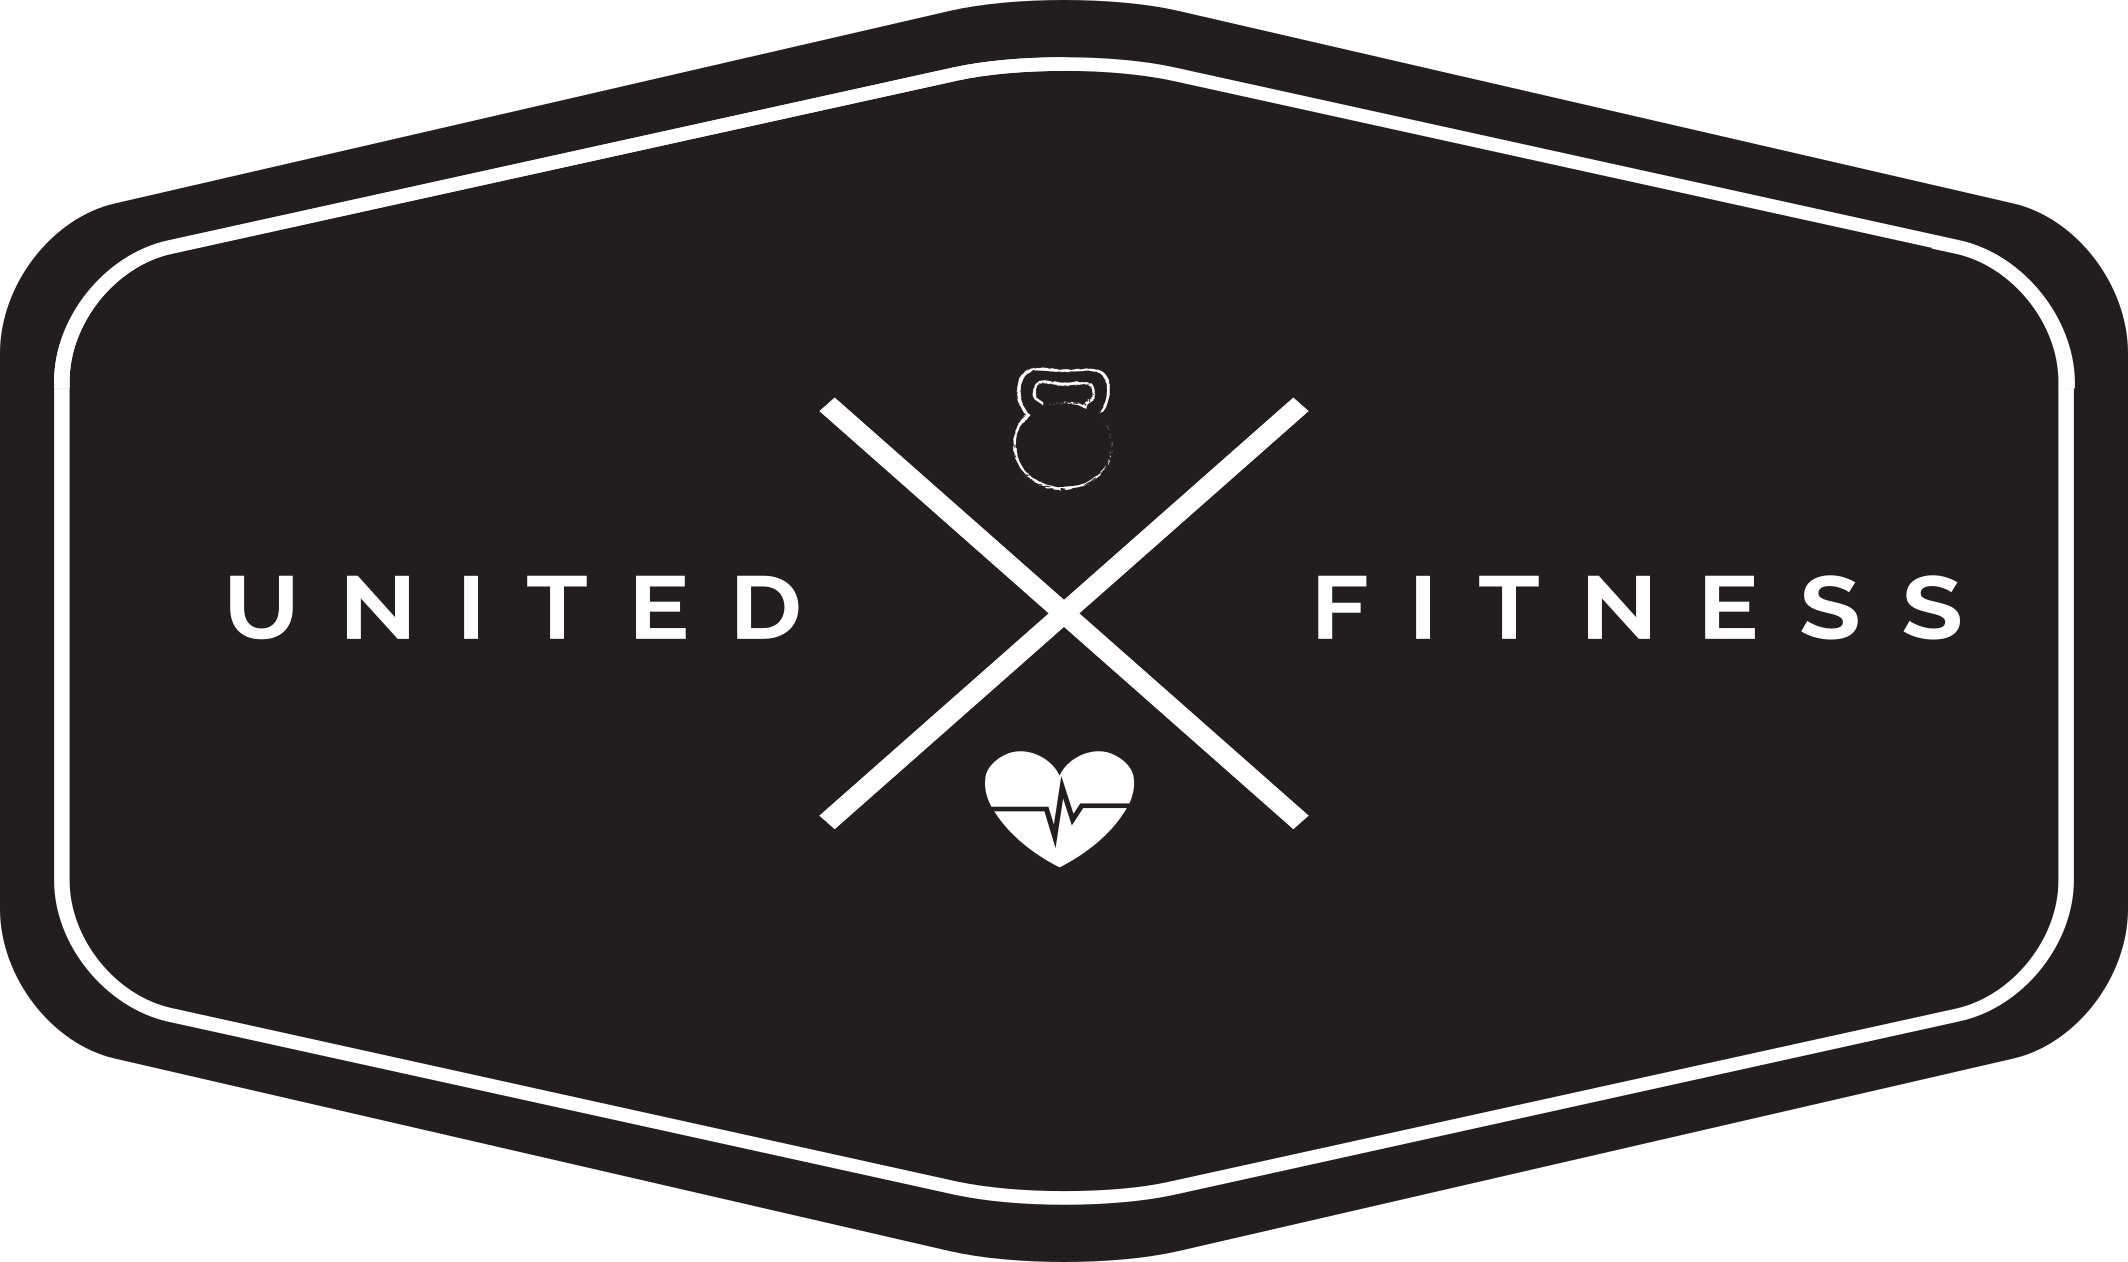 united.fitness – Outdoor Fitness logo